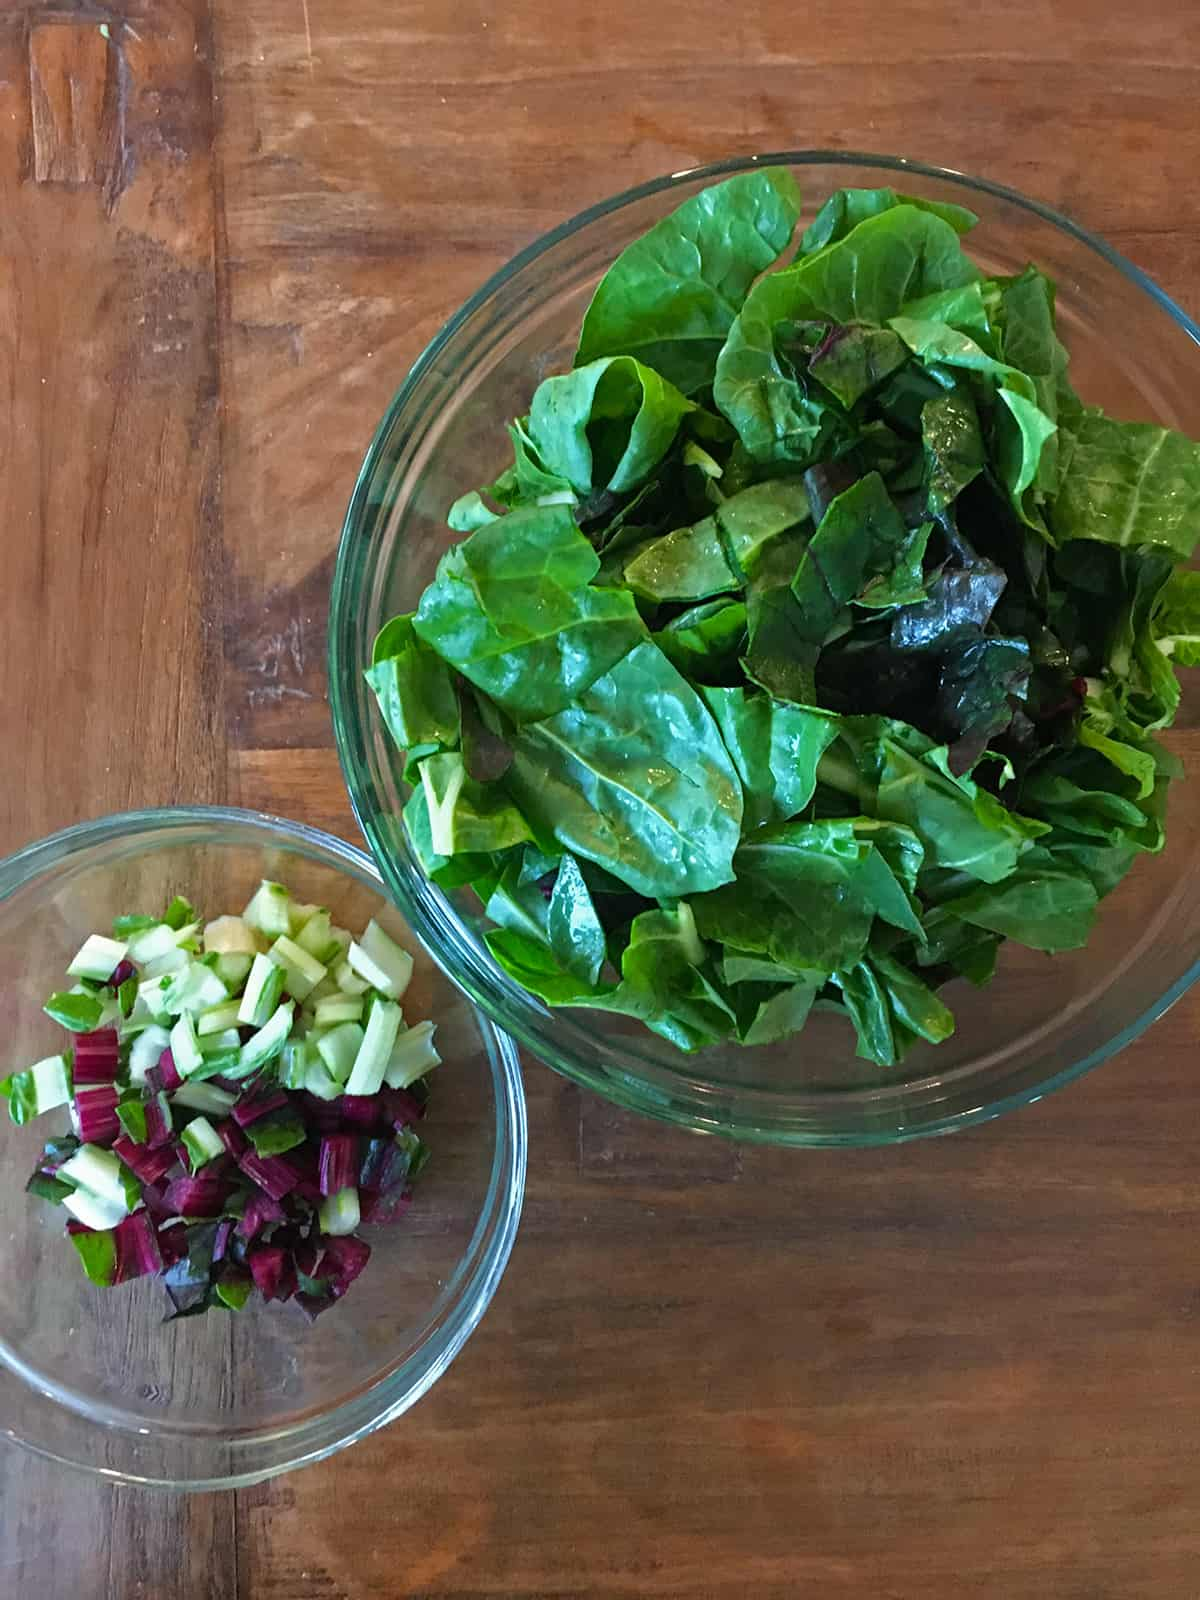 Swiss chard leaves and stems in two glass food prep bowls on a brown wood table